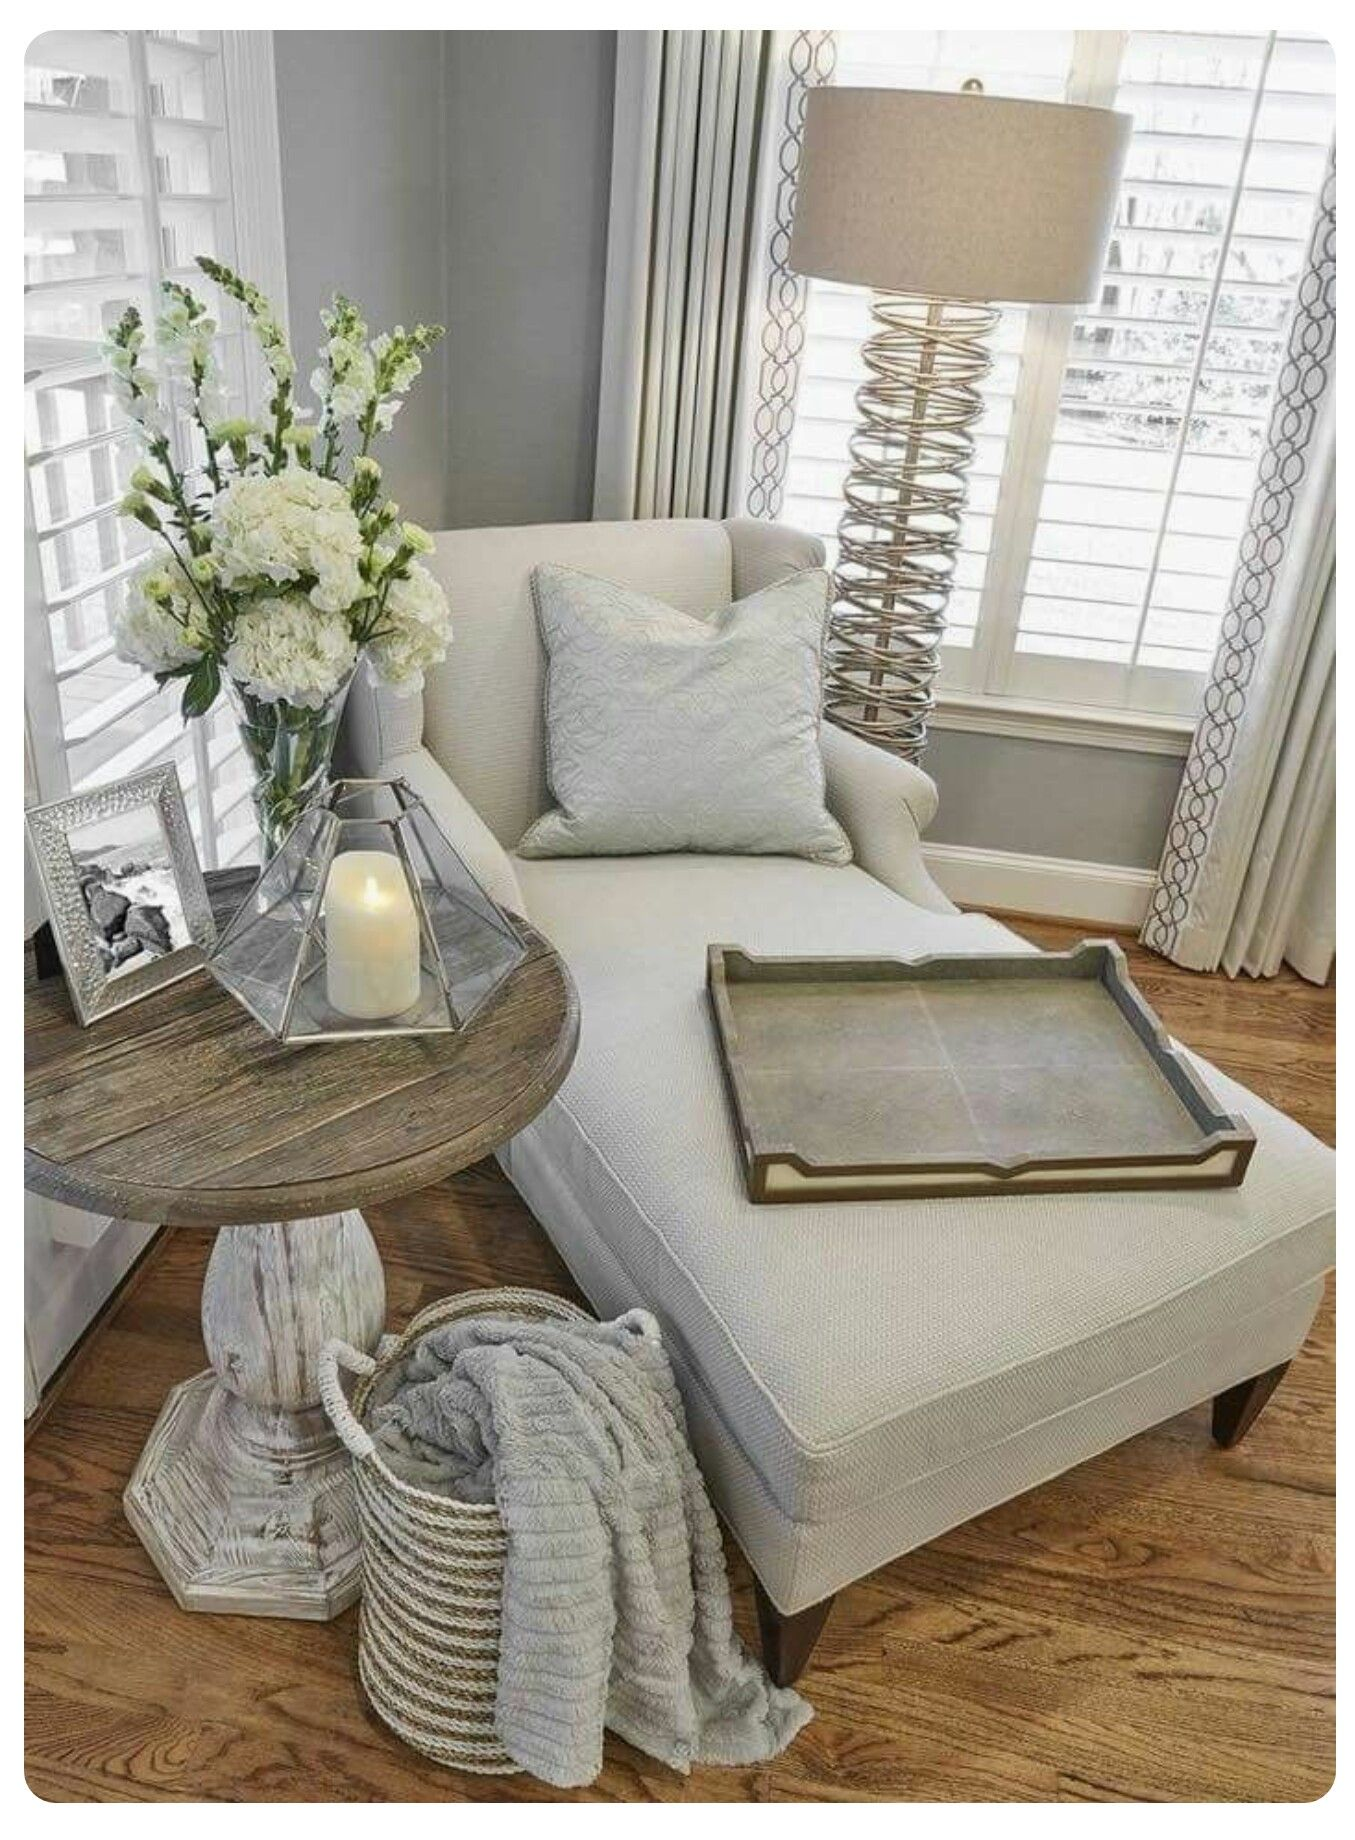 I Love The Idea Of A Chaise Lounge Maybe In The Bedroom Living Room Decor Cozy Master Bedrooms Decor Farm House Living Room